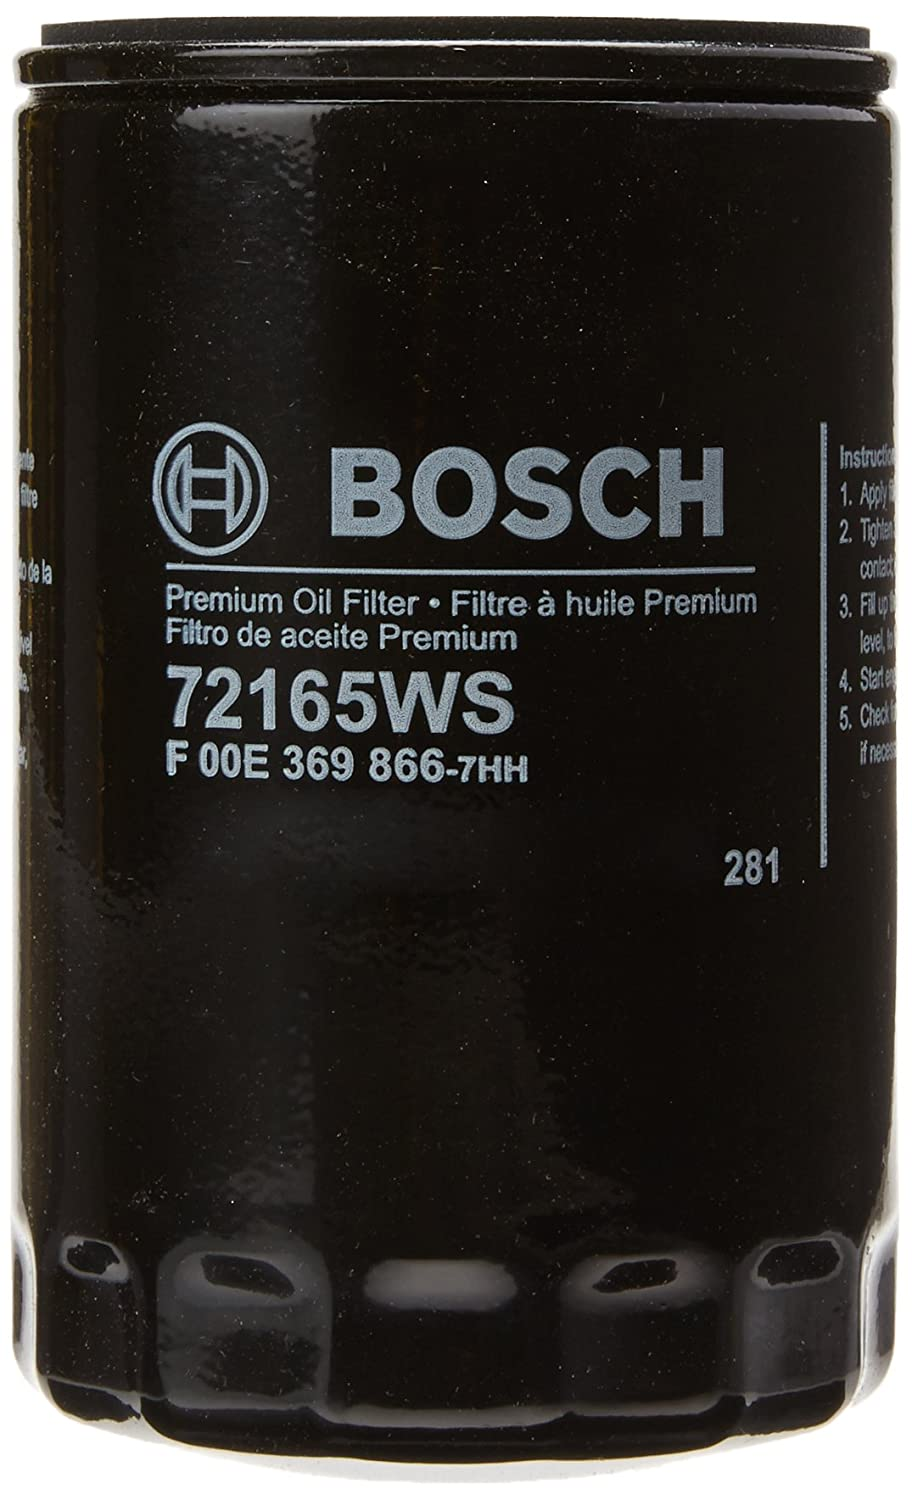 Bosch 72165WS / F00E369866 Workshop Engine Oil Filter ...